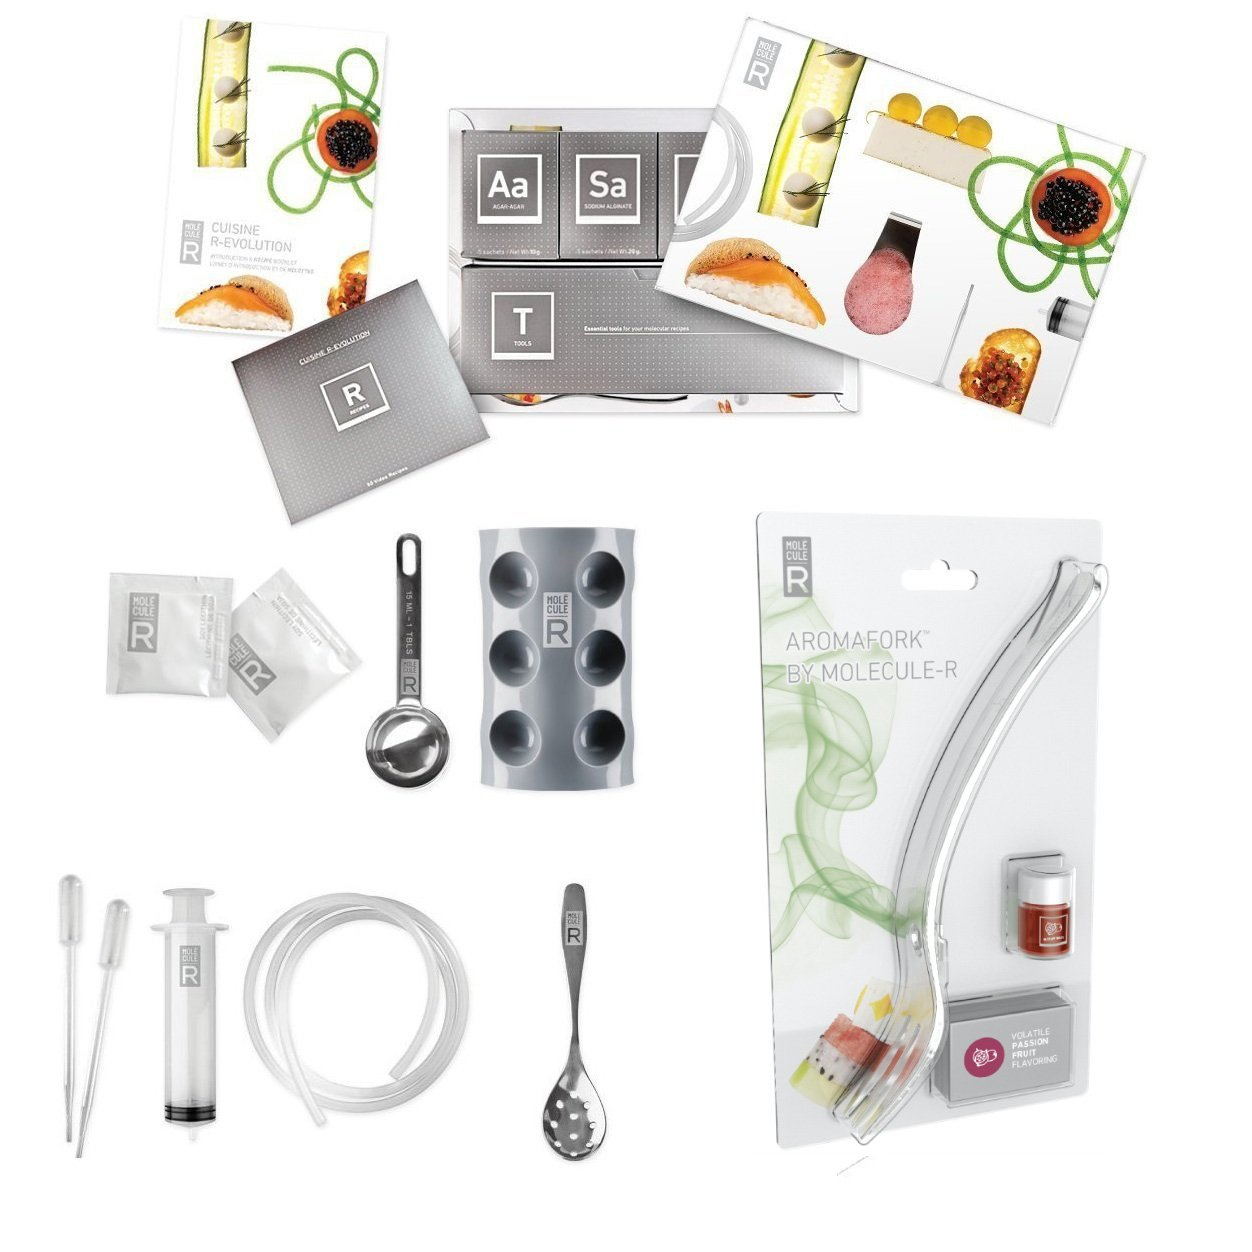 molecule r aroma combo cuisine molecular gastronomy kit aromafork double pack ebay. Black Bedroom Furniture Sets. Home Design Ideas